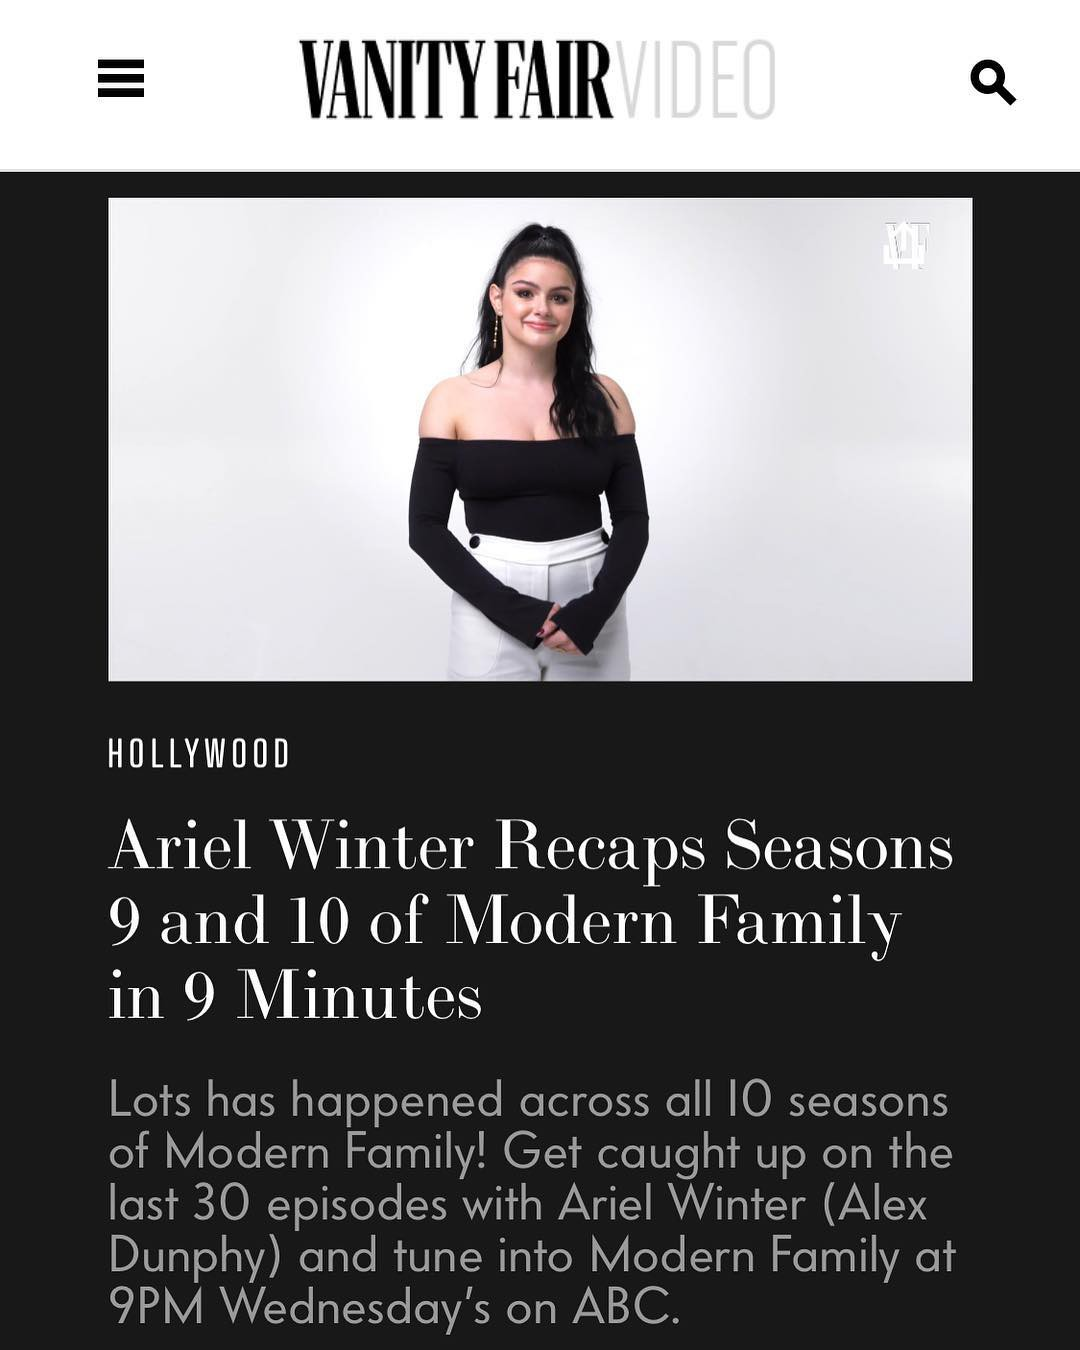 Adorable ideas for vanity fair, Ariel Winter